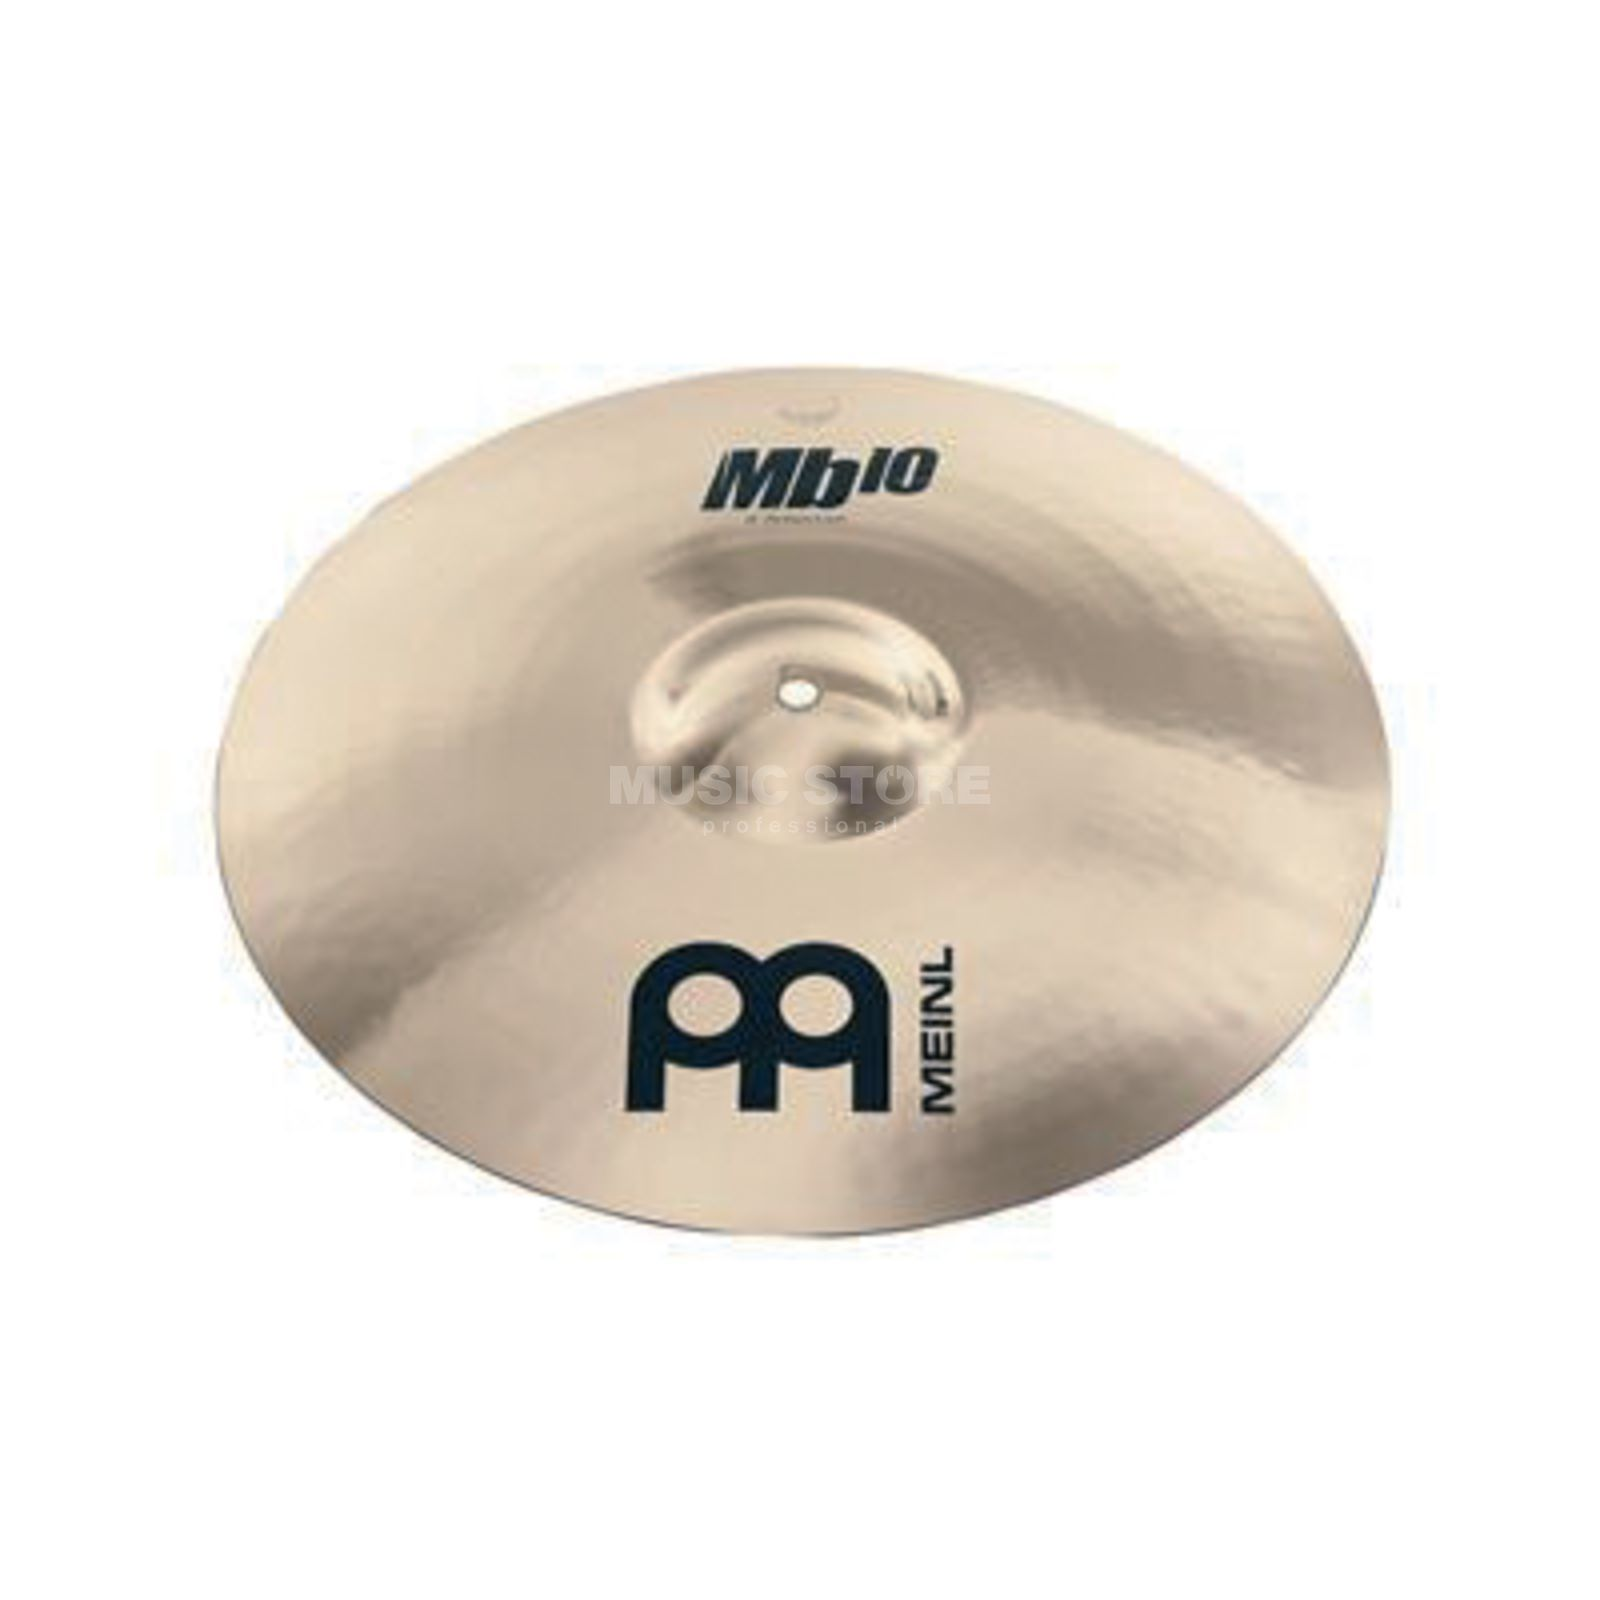 "Meinl MB10 Thin Crash 18"" MB10-18TC-B, Brilliant Finish Produktbild"